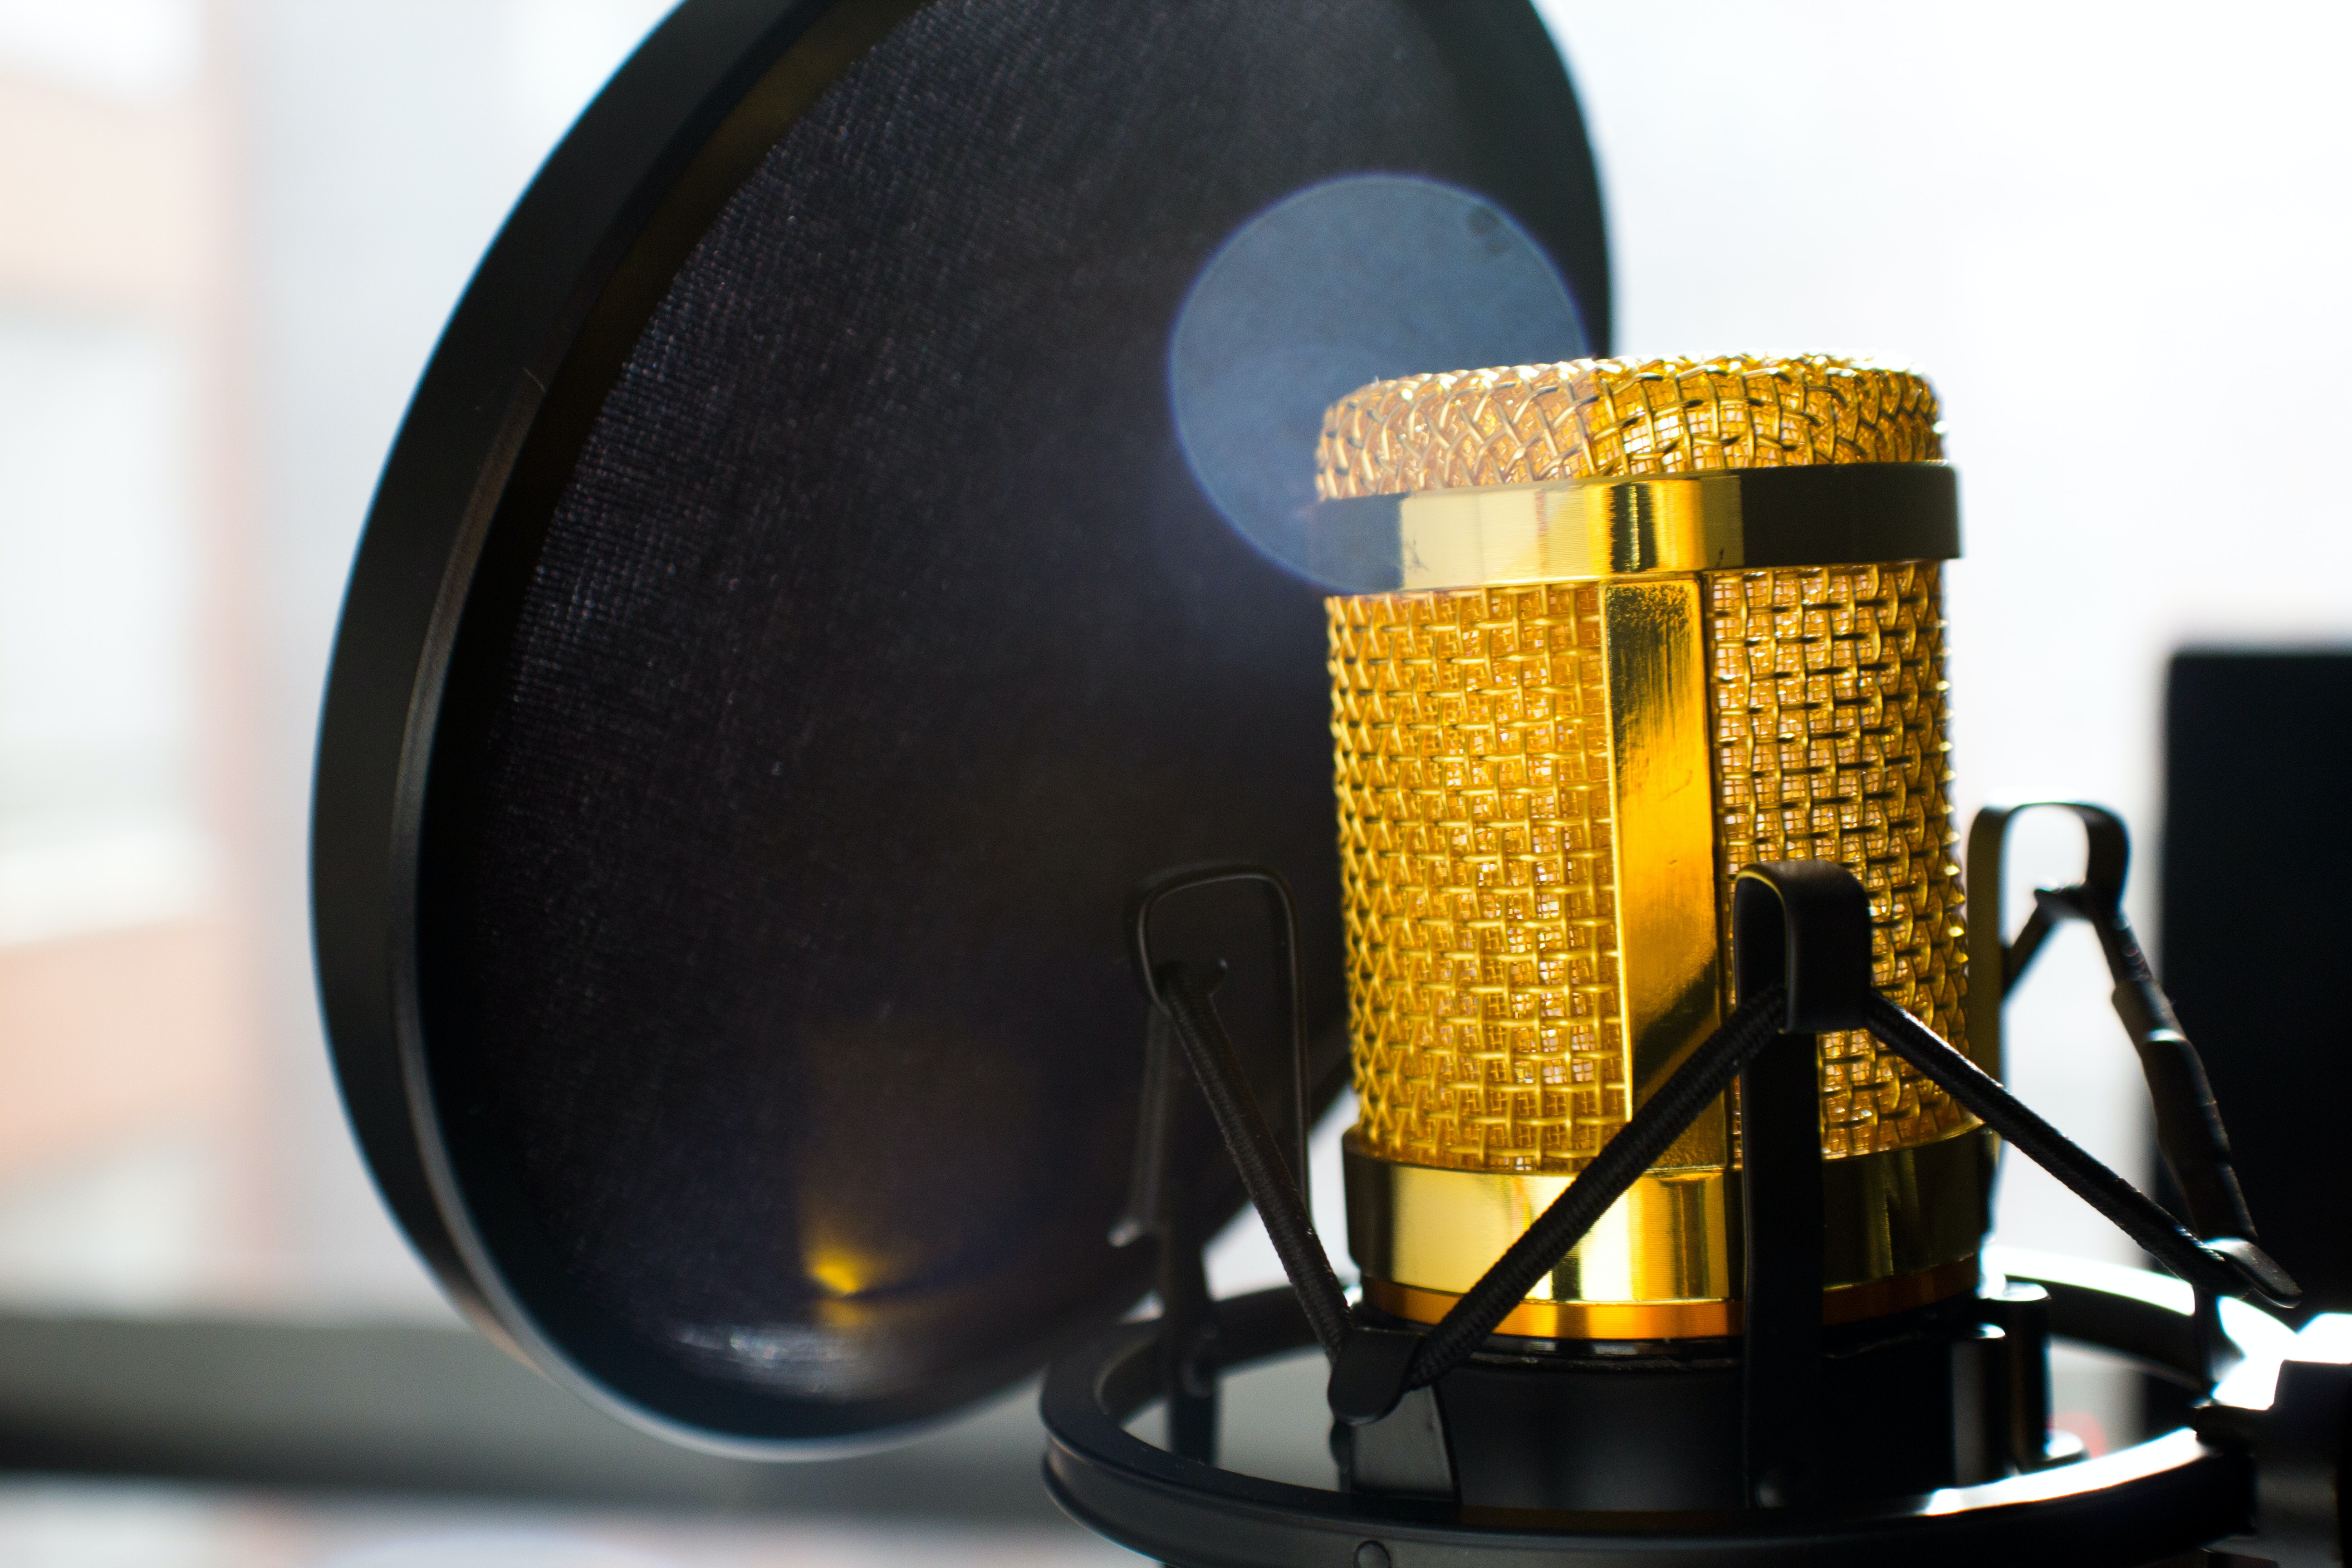 Close up photo of gold colored mic